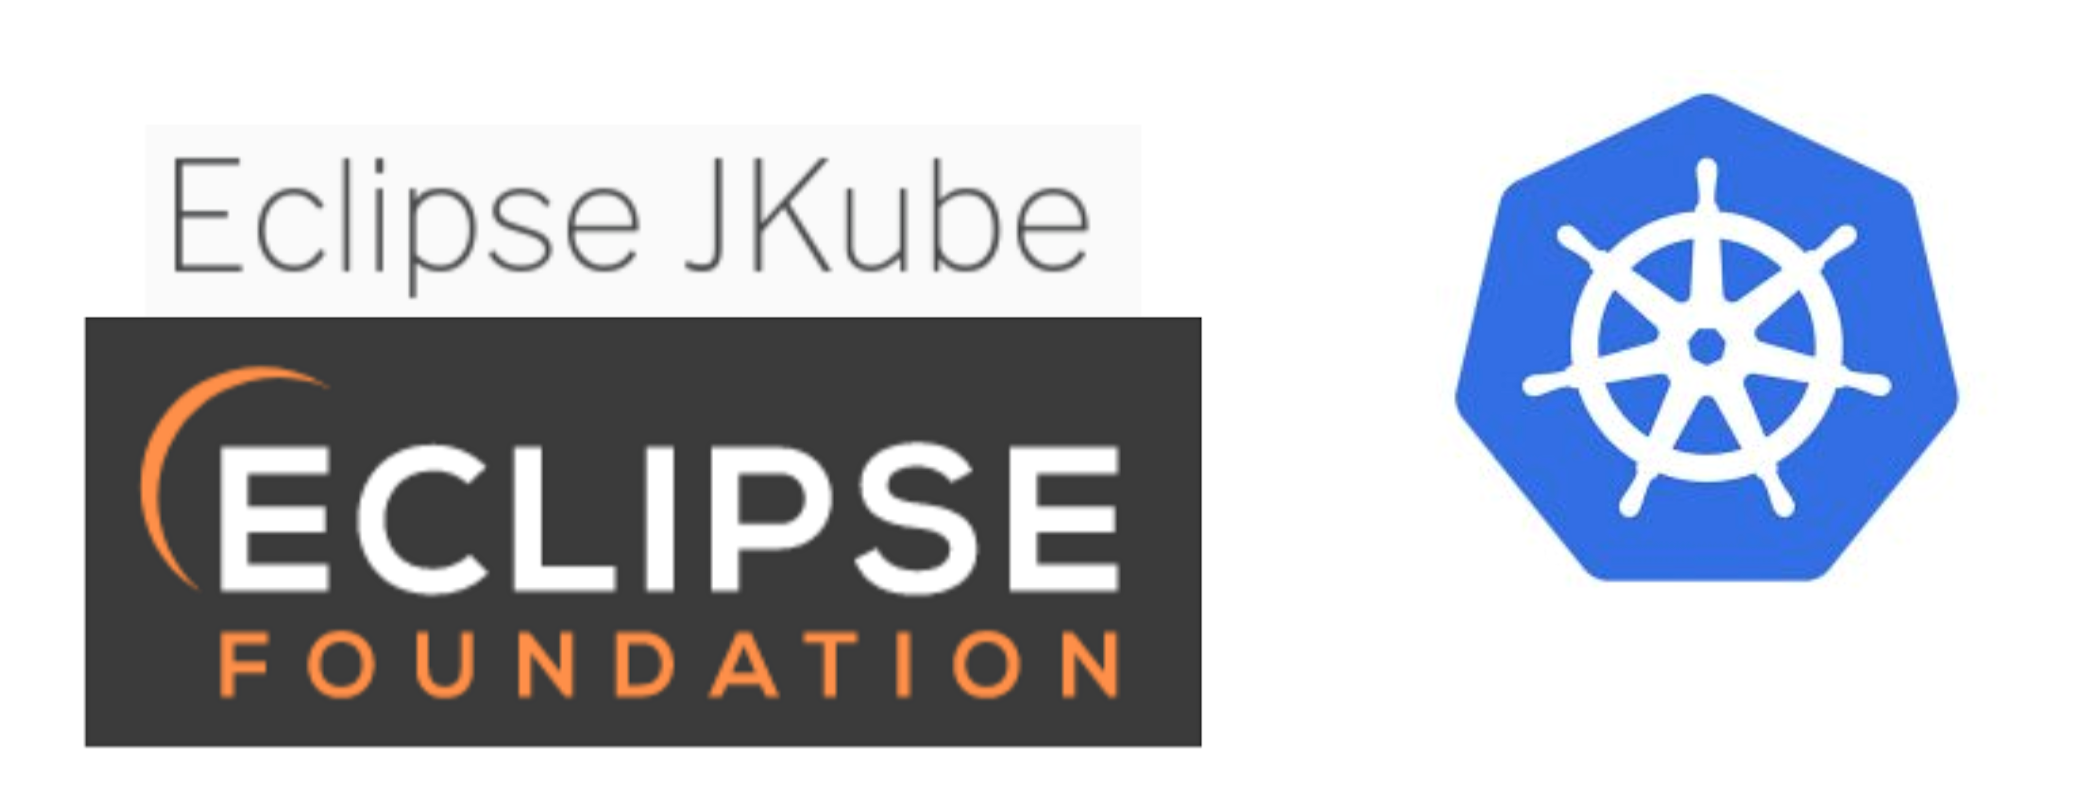 Introduction to Eclipse JKube: Java tooling for Kubernetes and Red Hat OpenShift